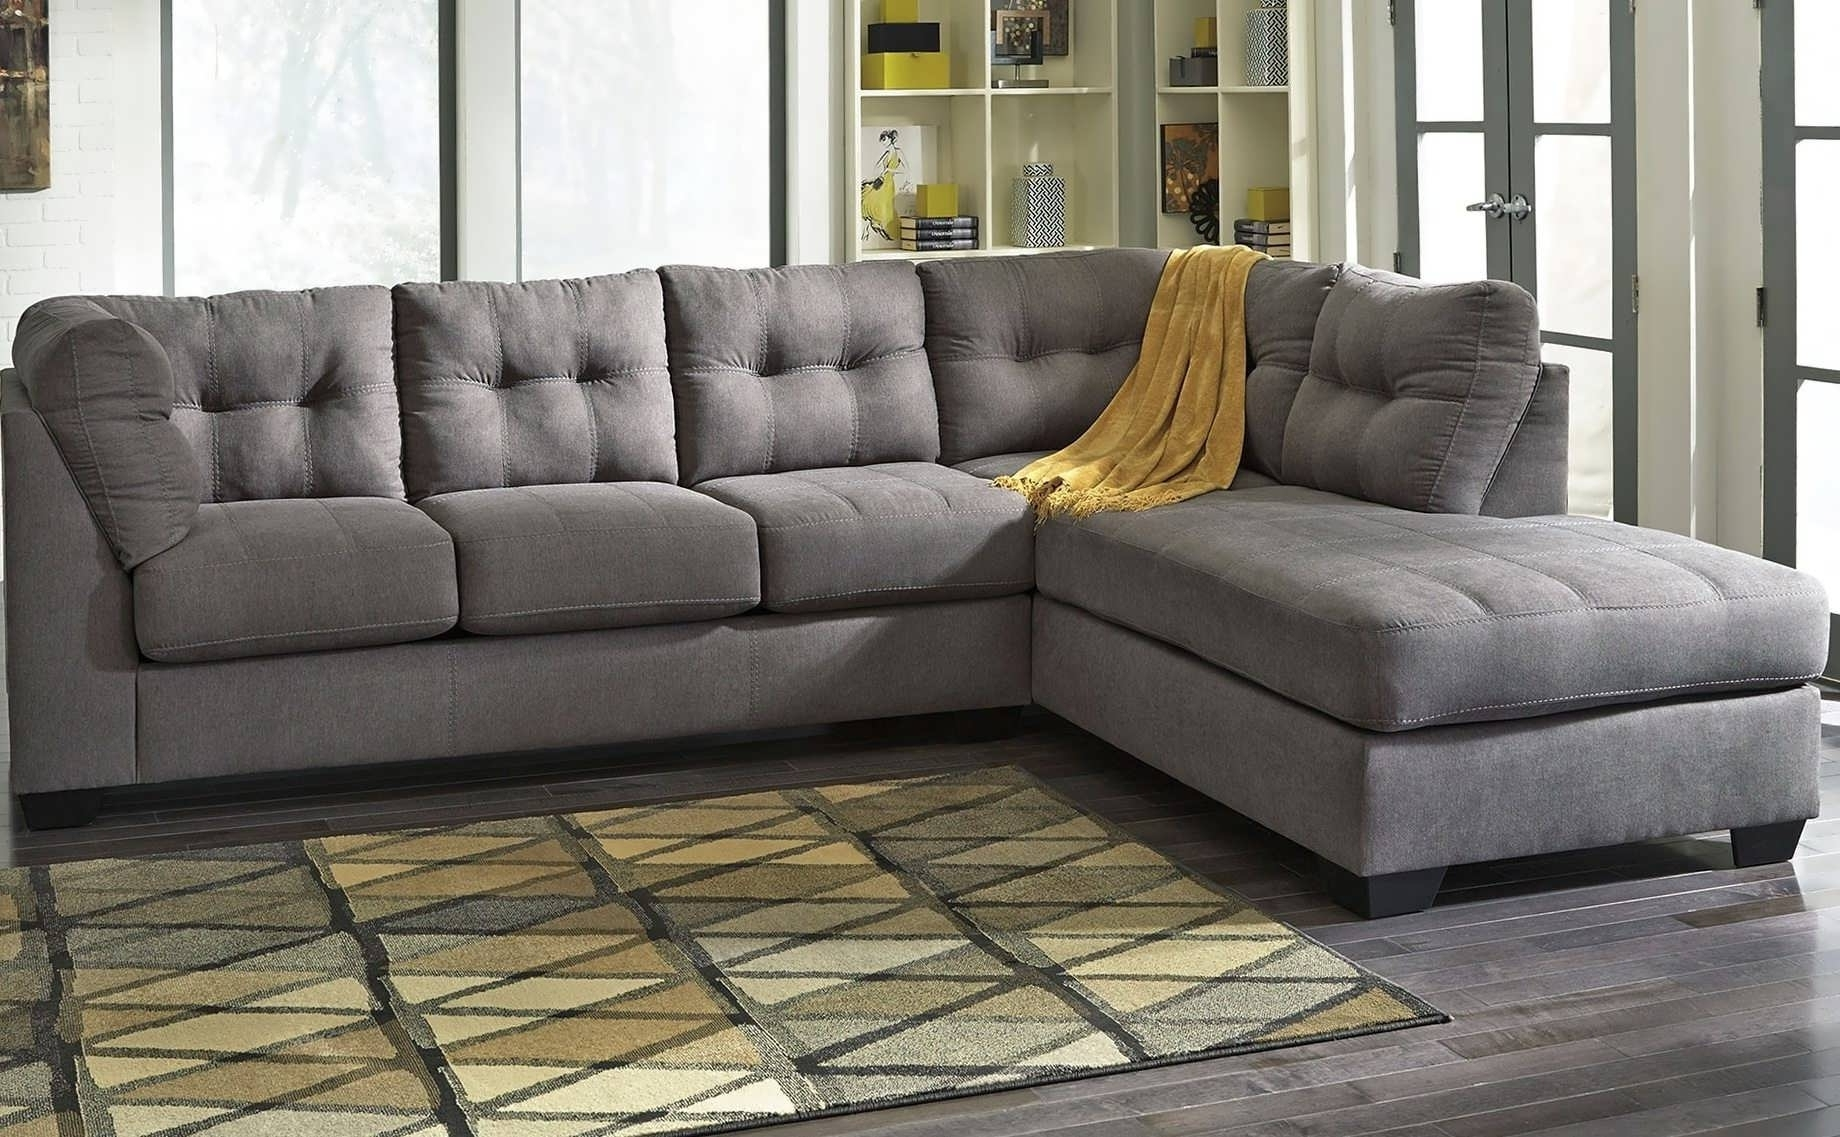 Sofa : Gray Sectional Sleeper Sectional Oversized Sectionals Grey In Well Known Grey Chaise Sectionals (View 4 of 15)